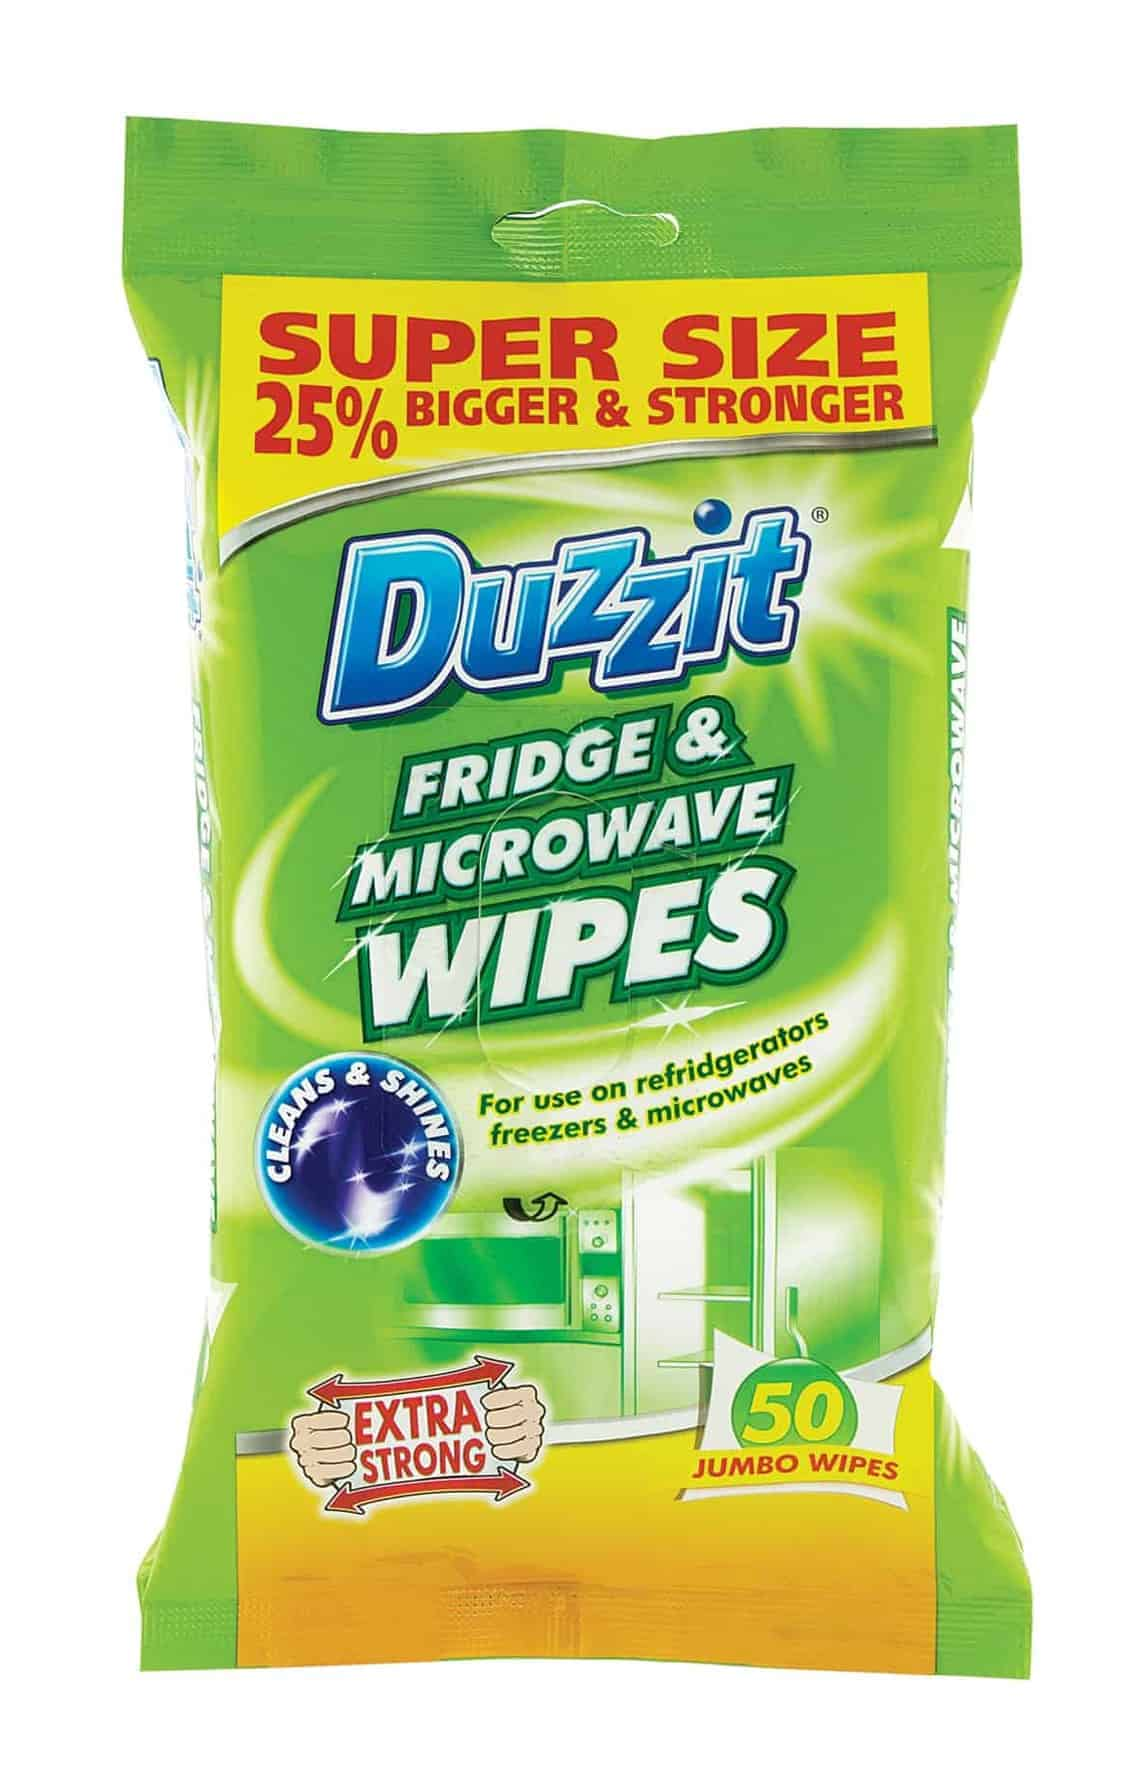 Duzzit 50pk Fridge & Micro Wave Wipes